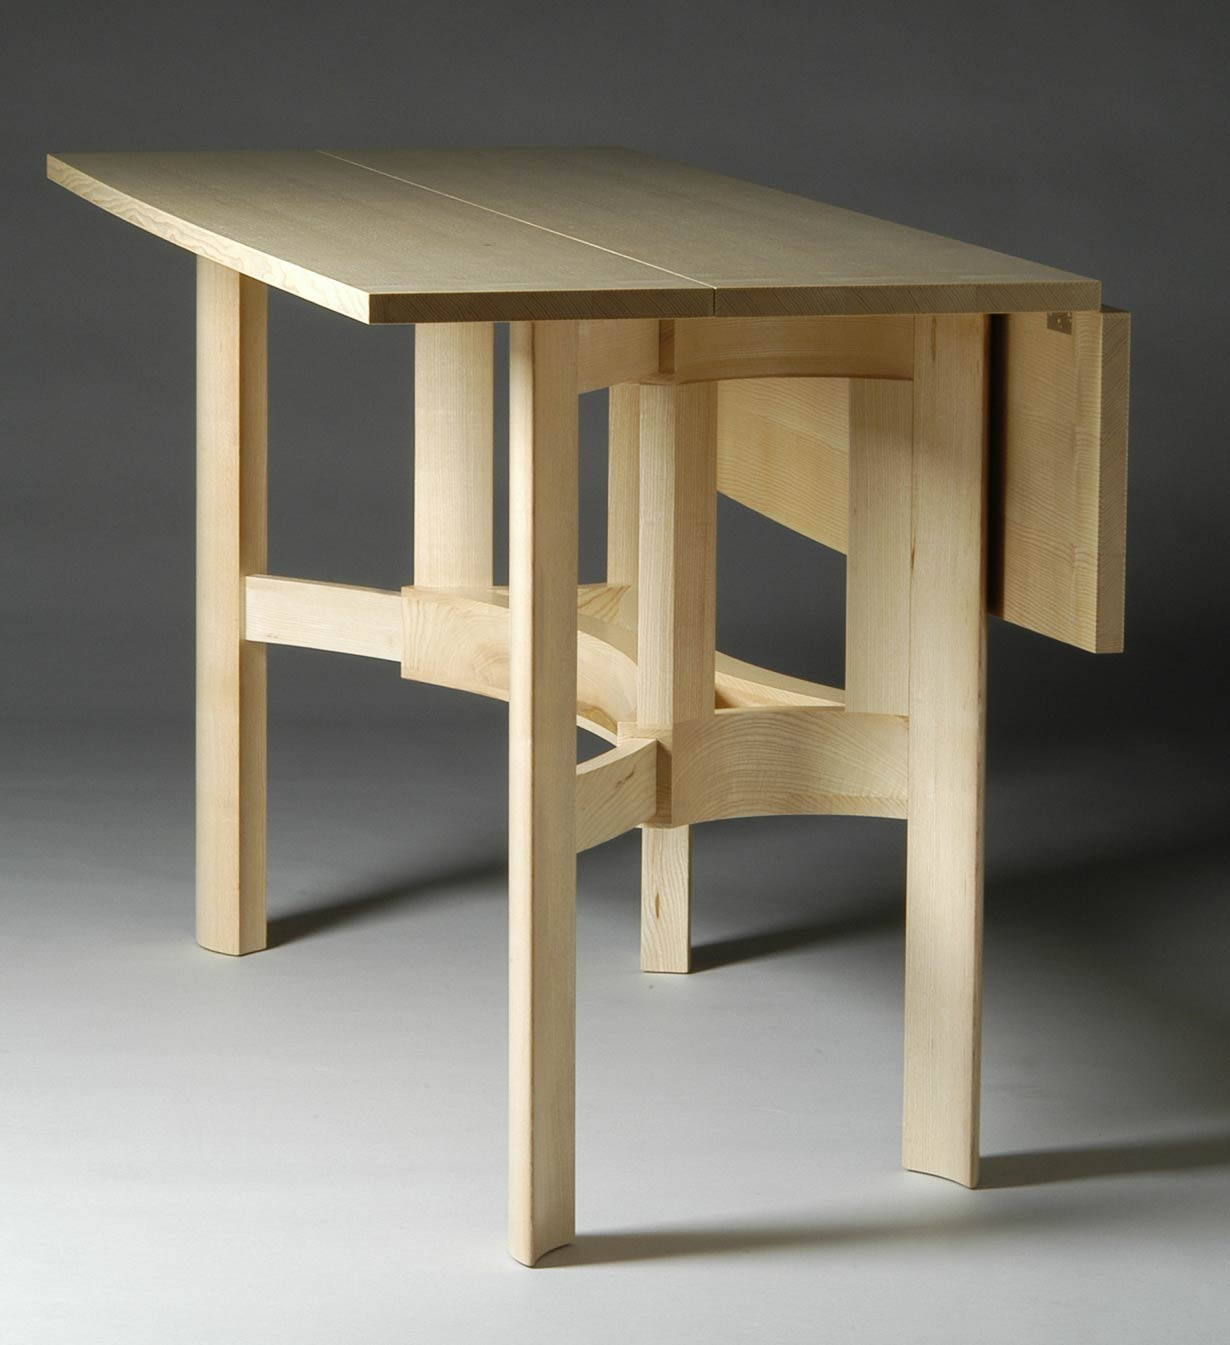 Drop Leaf Table Bespoke Drop-leaf Dining Table In Ash By Furniture